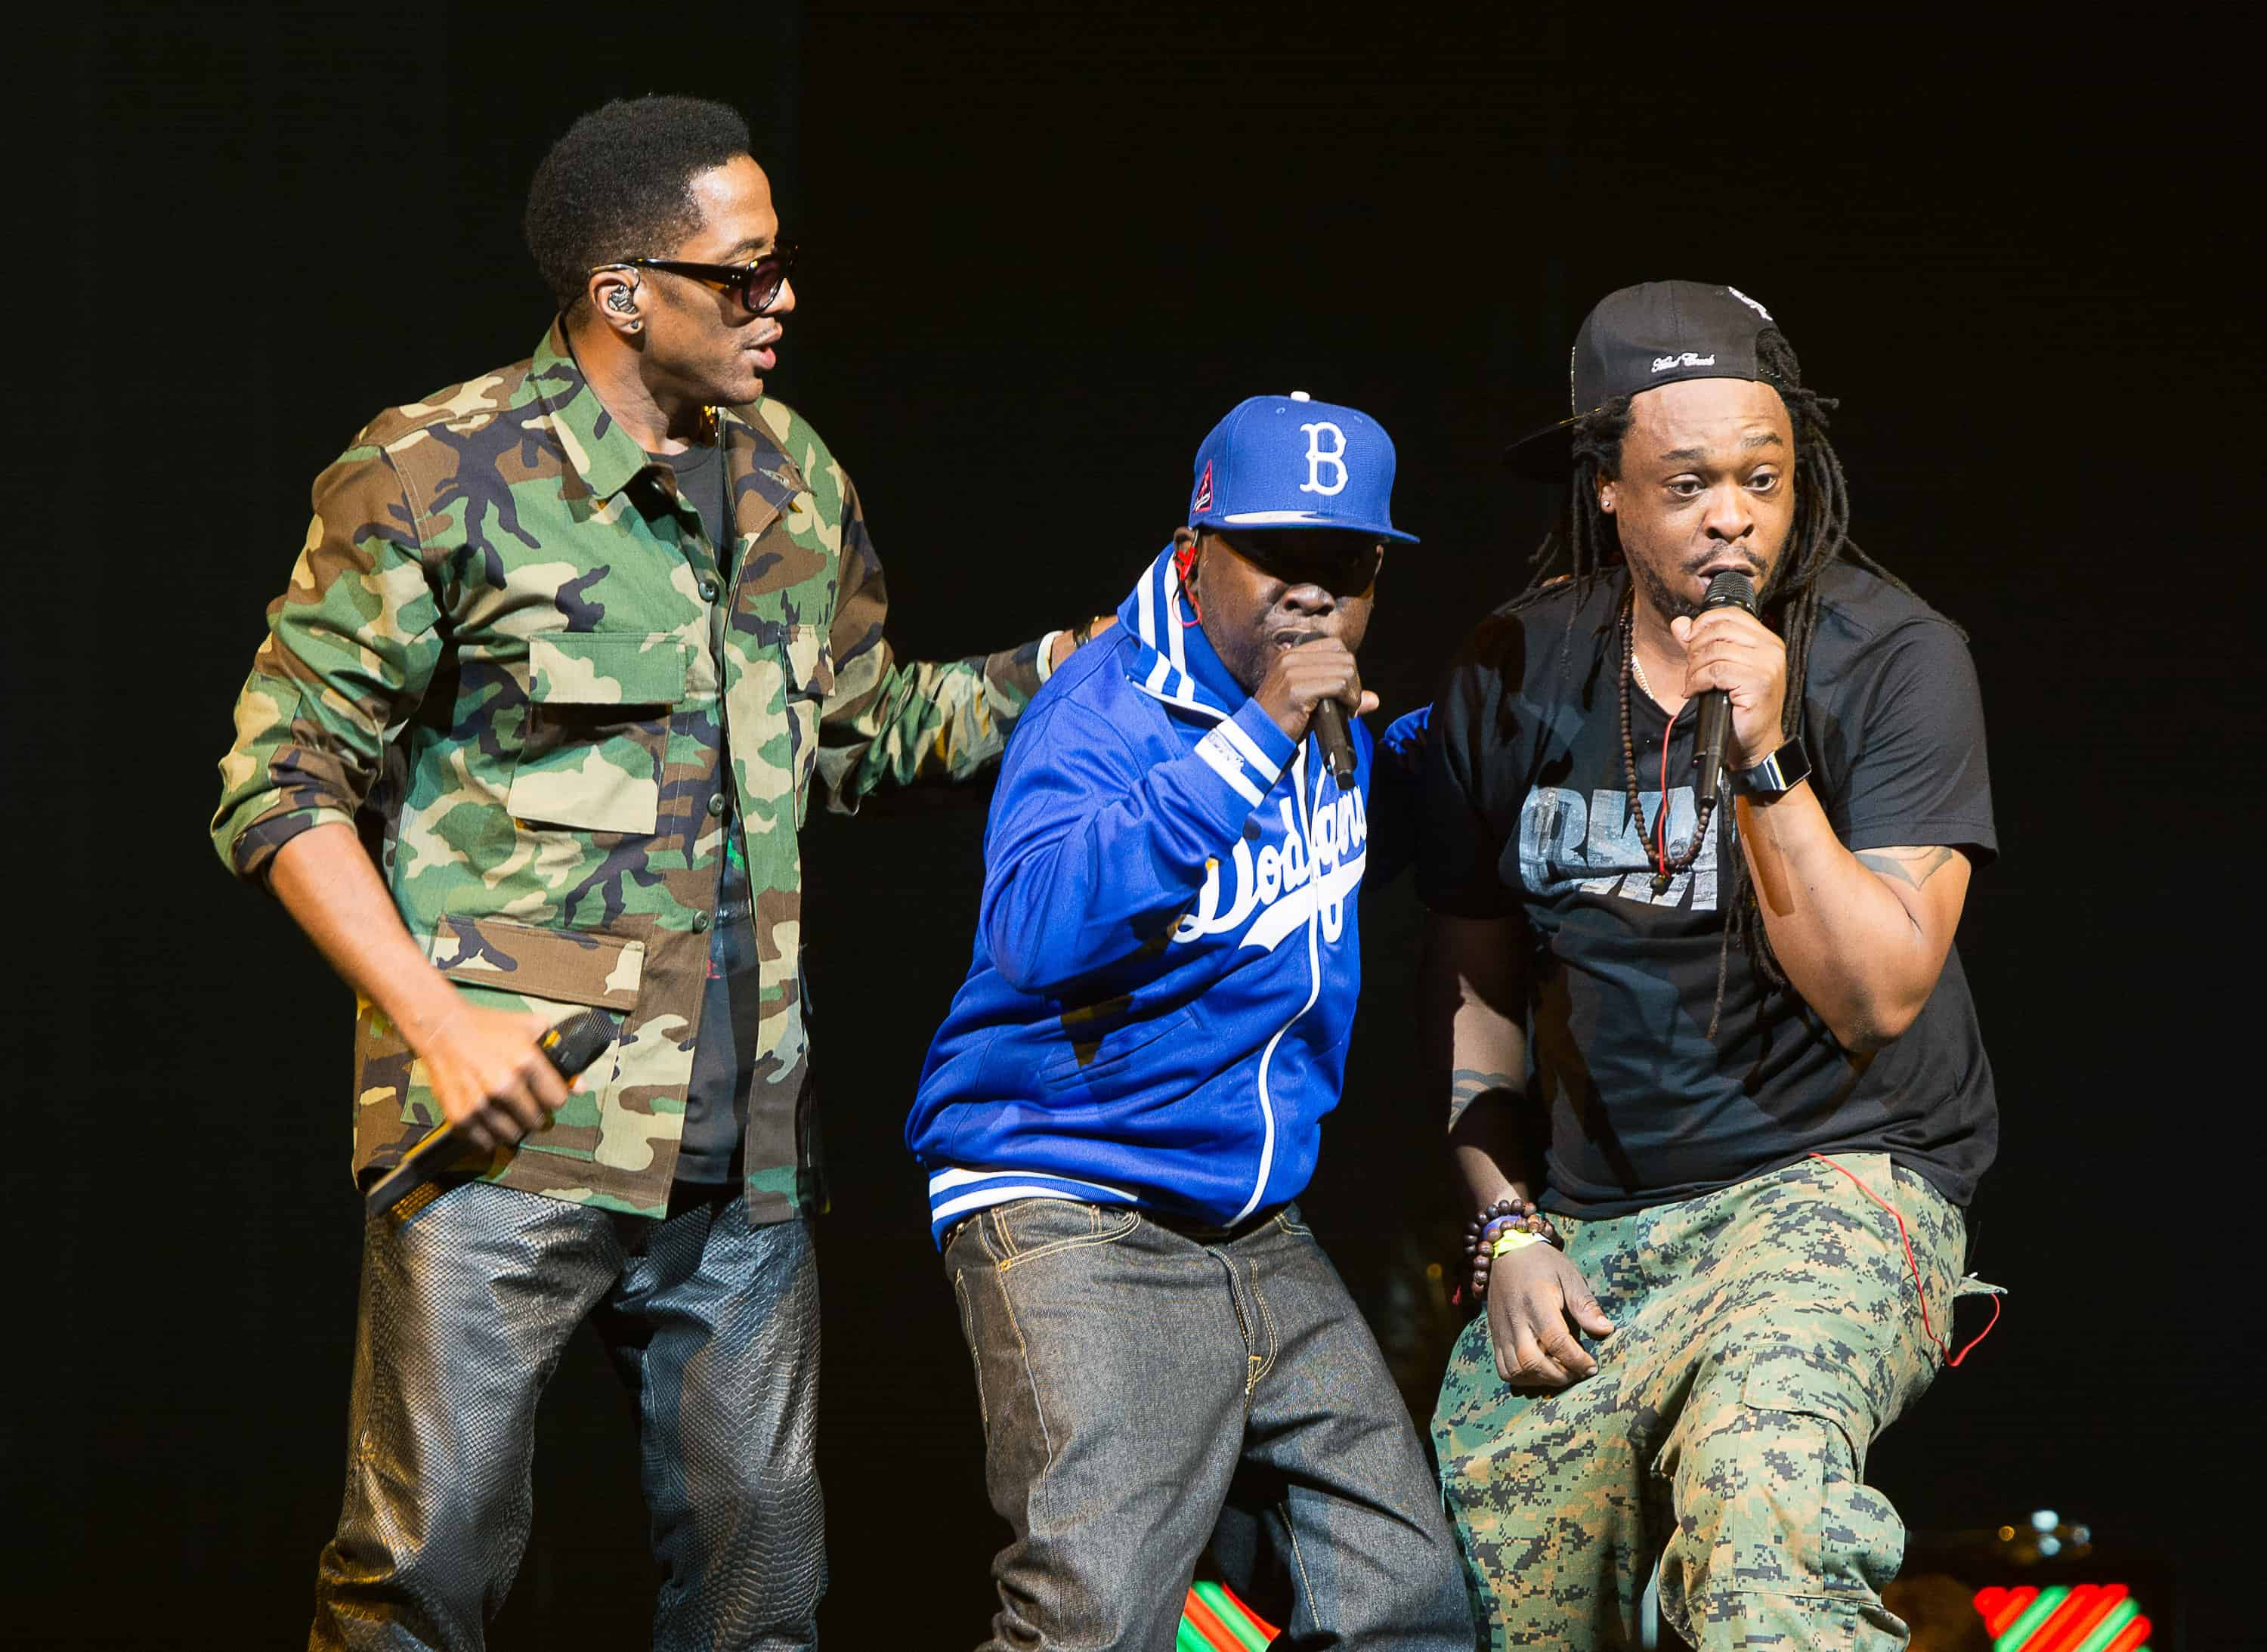 Hip hop masters Q-Tip, Phife Dawg and Jarobi White of A Tribe Called Quest